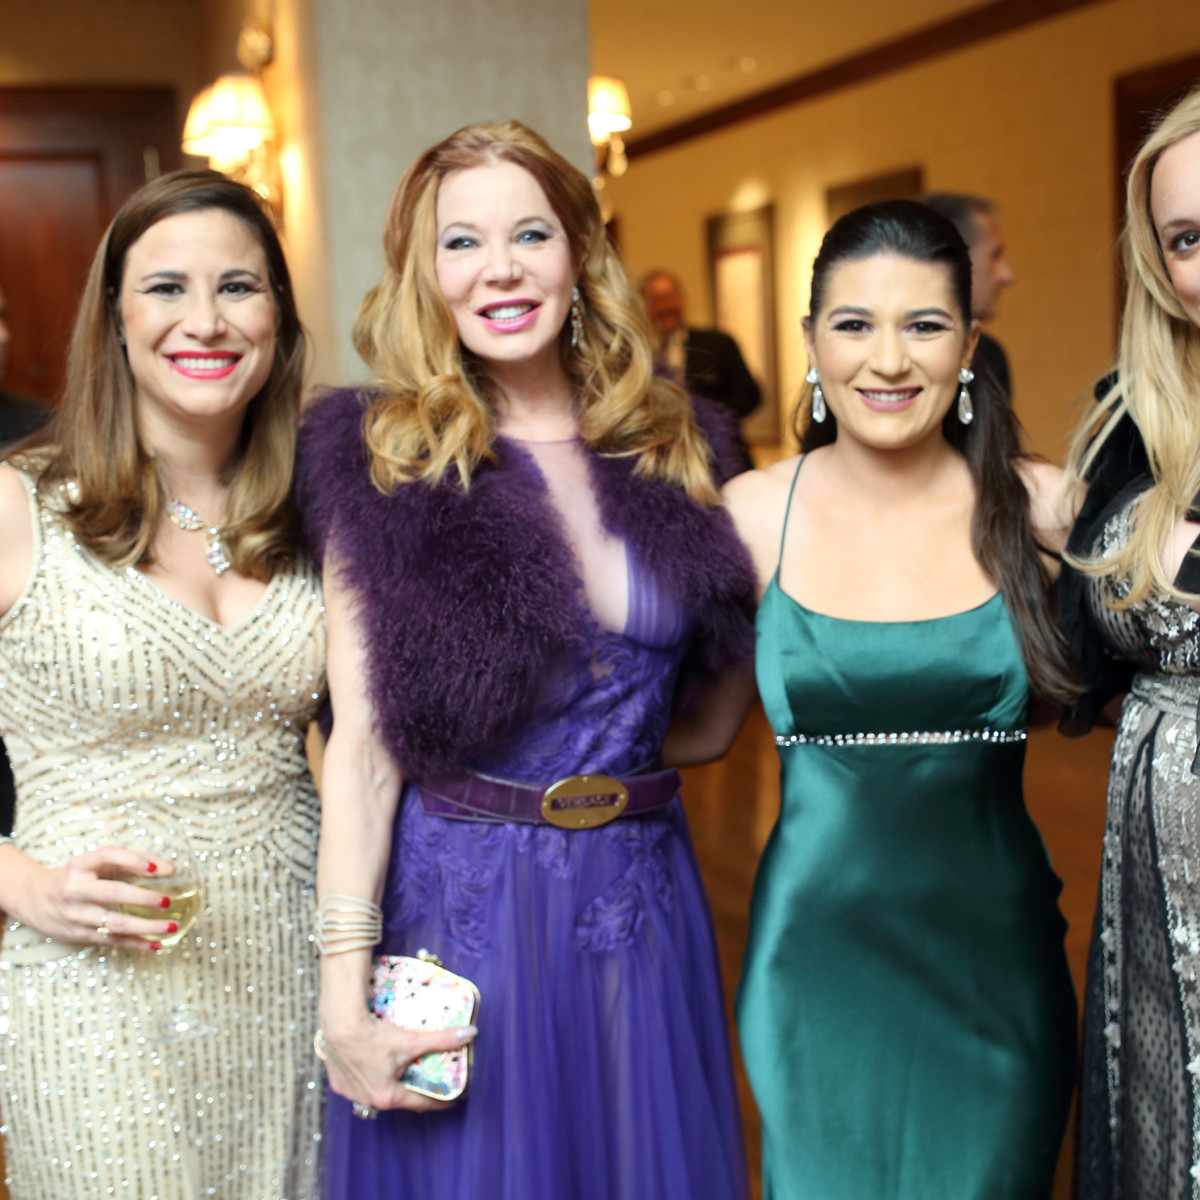 Denali Foundation gala, Feb. 2016, Jacqueline Smooke, Cindi Rose, Sequoia Di Angelo, Erica Rose